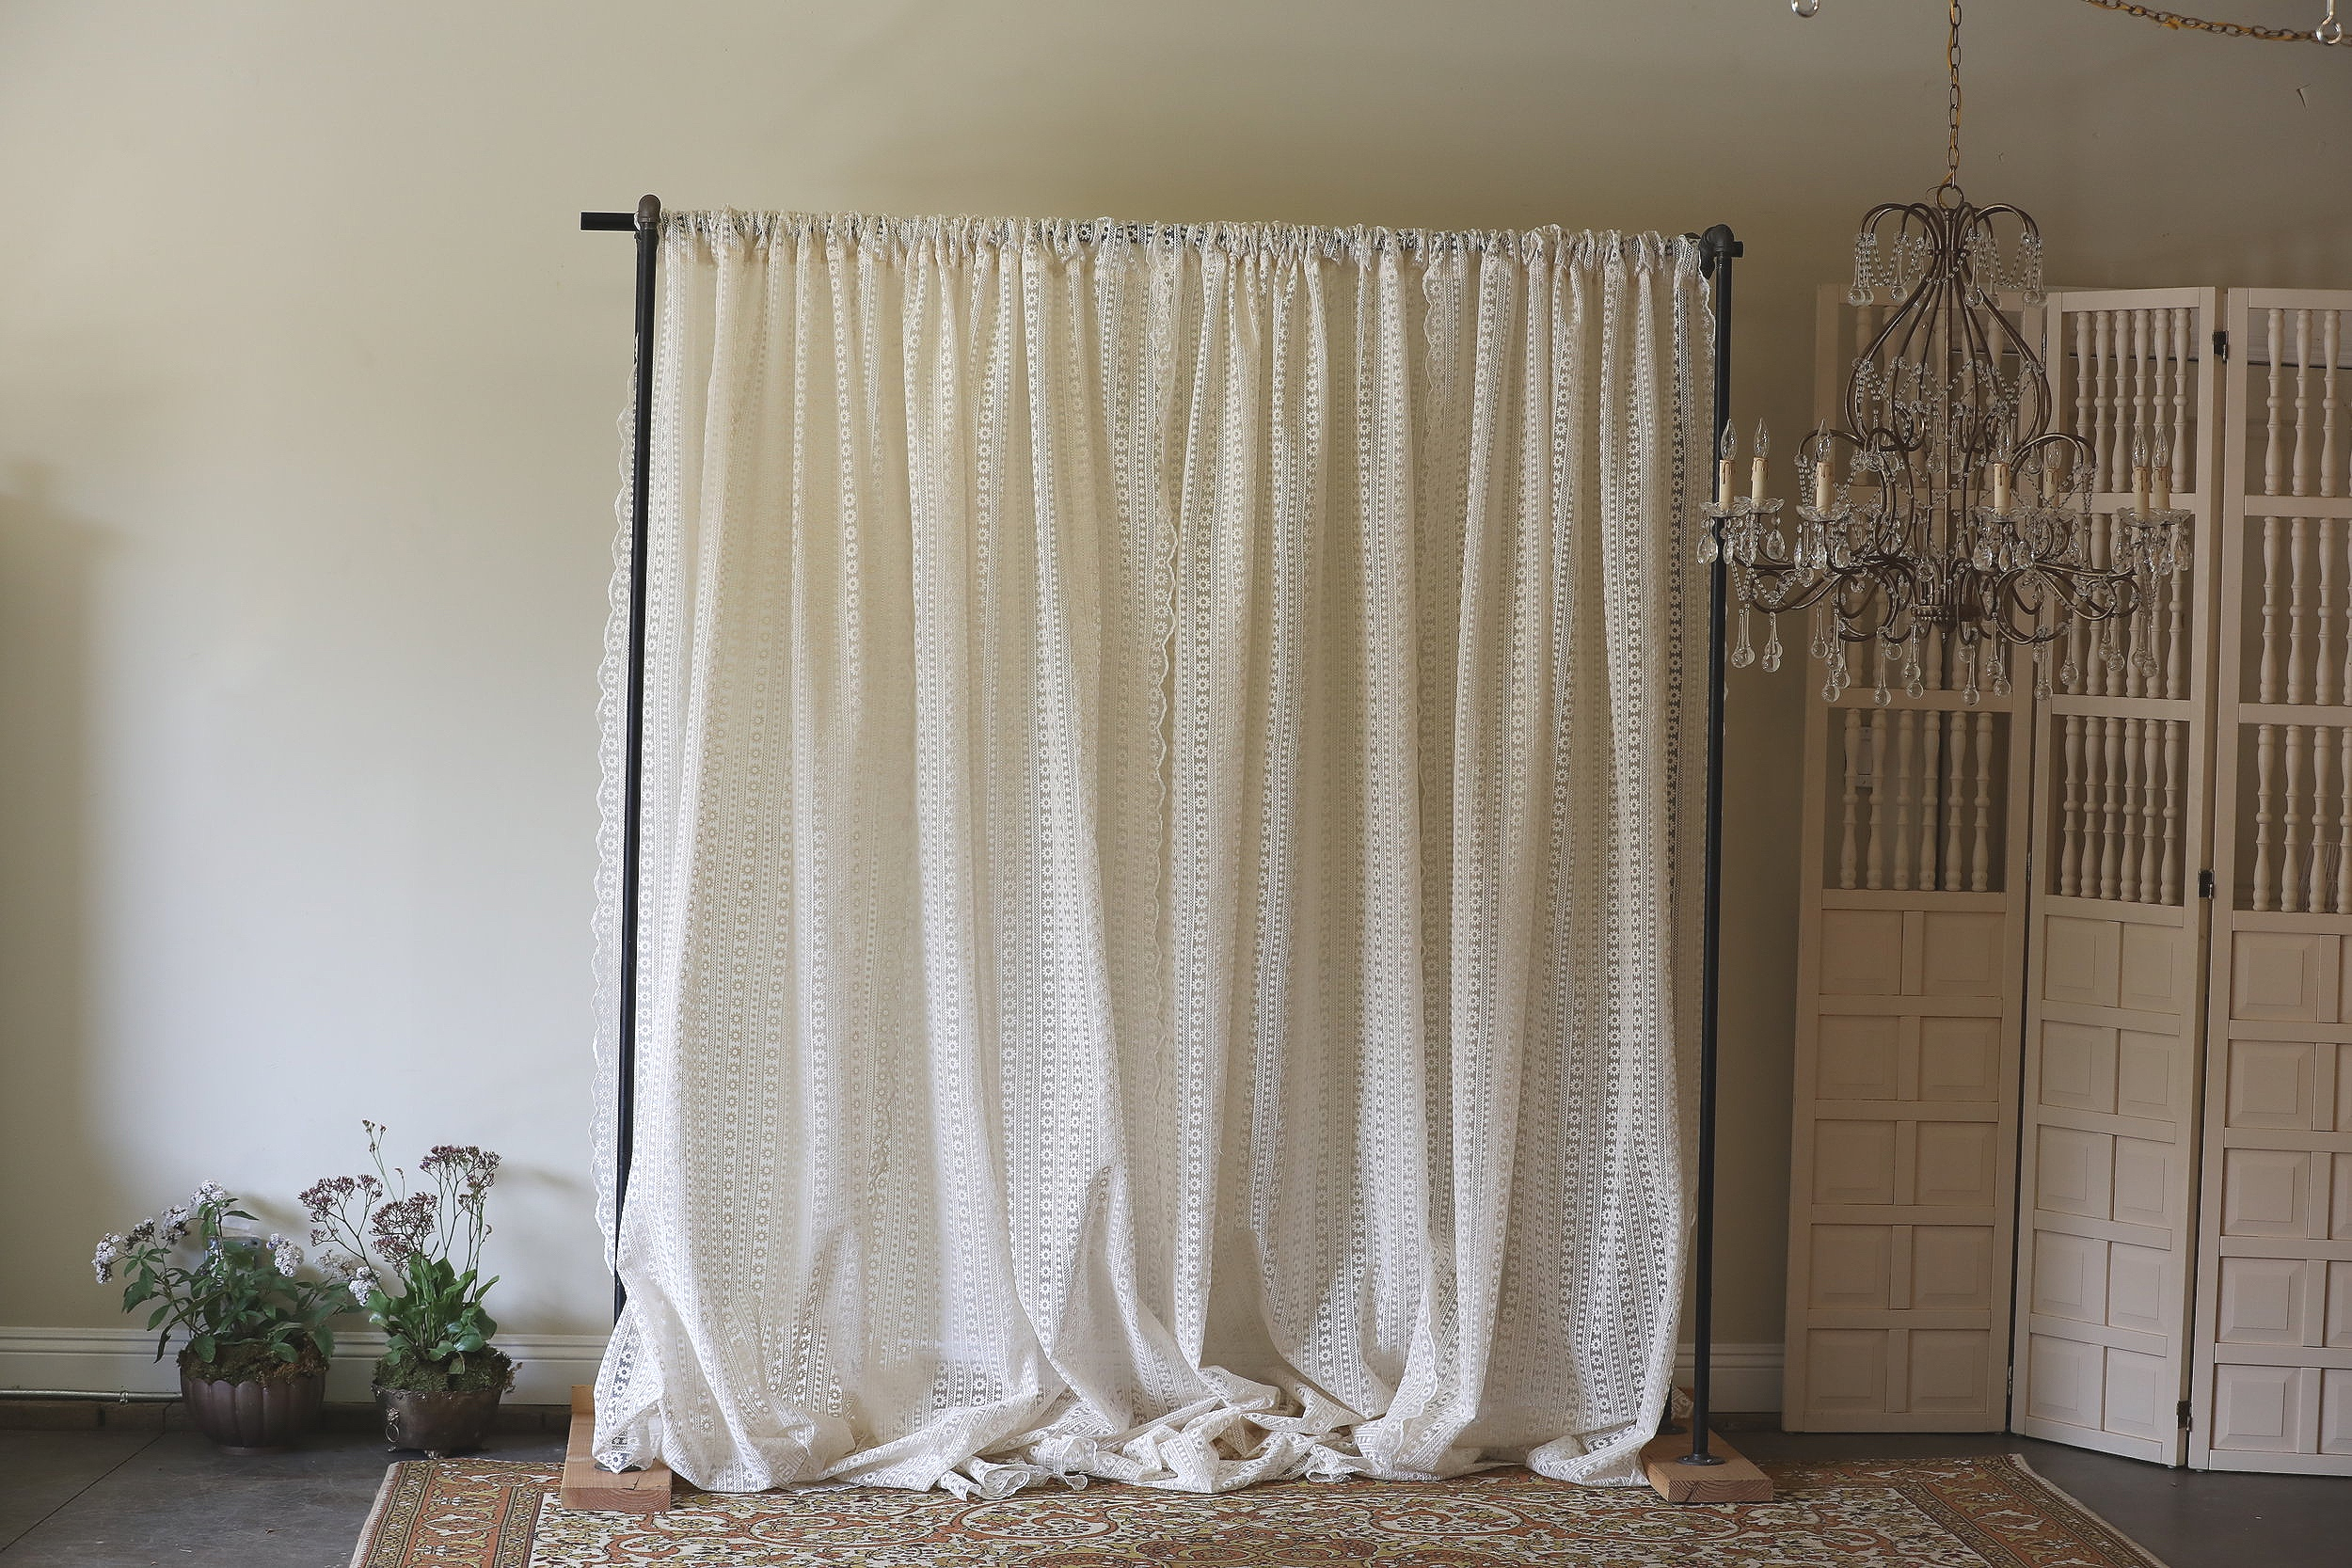 Lace Curtain Backdrop